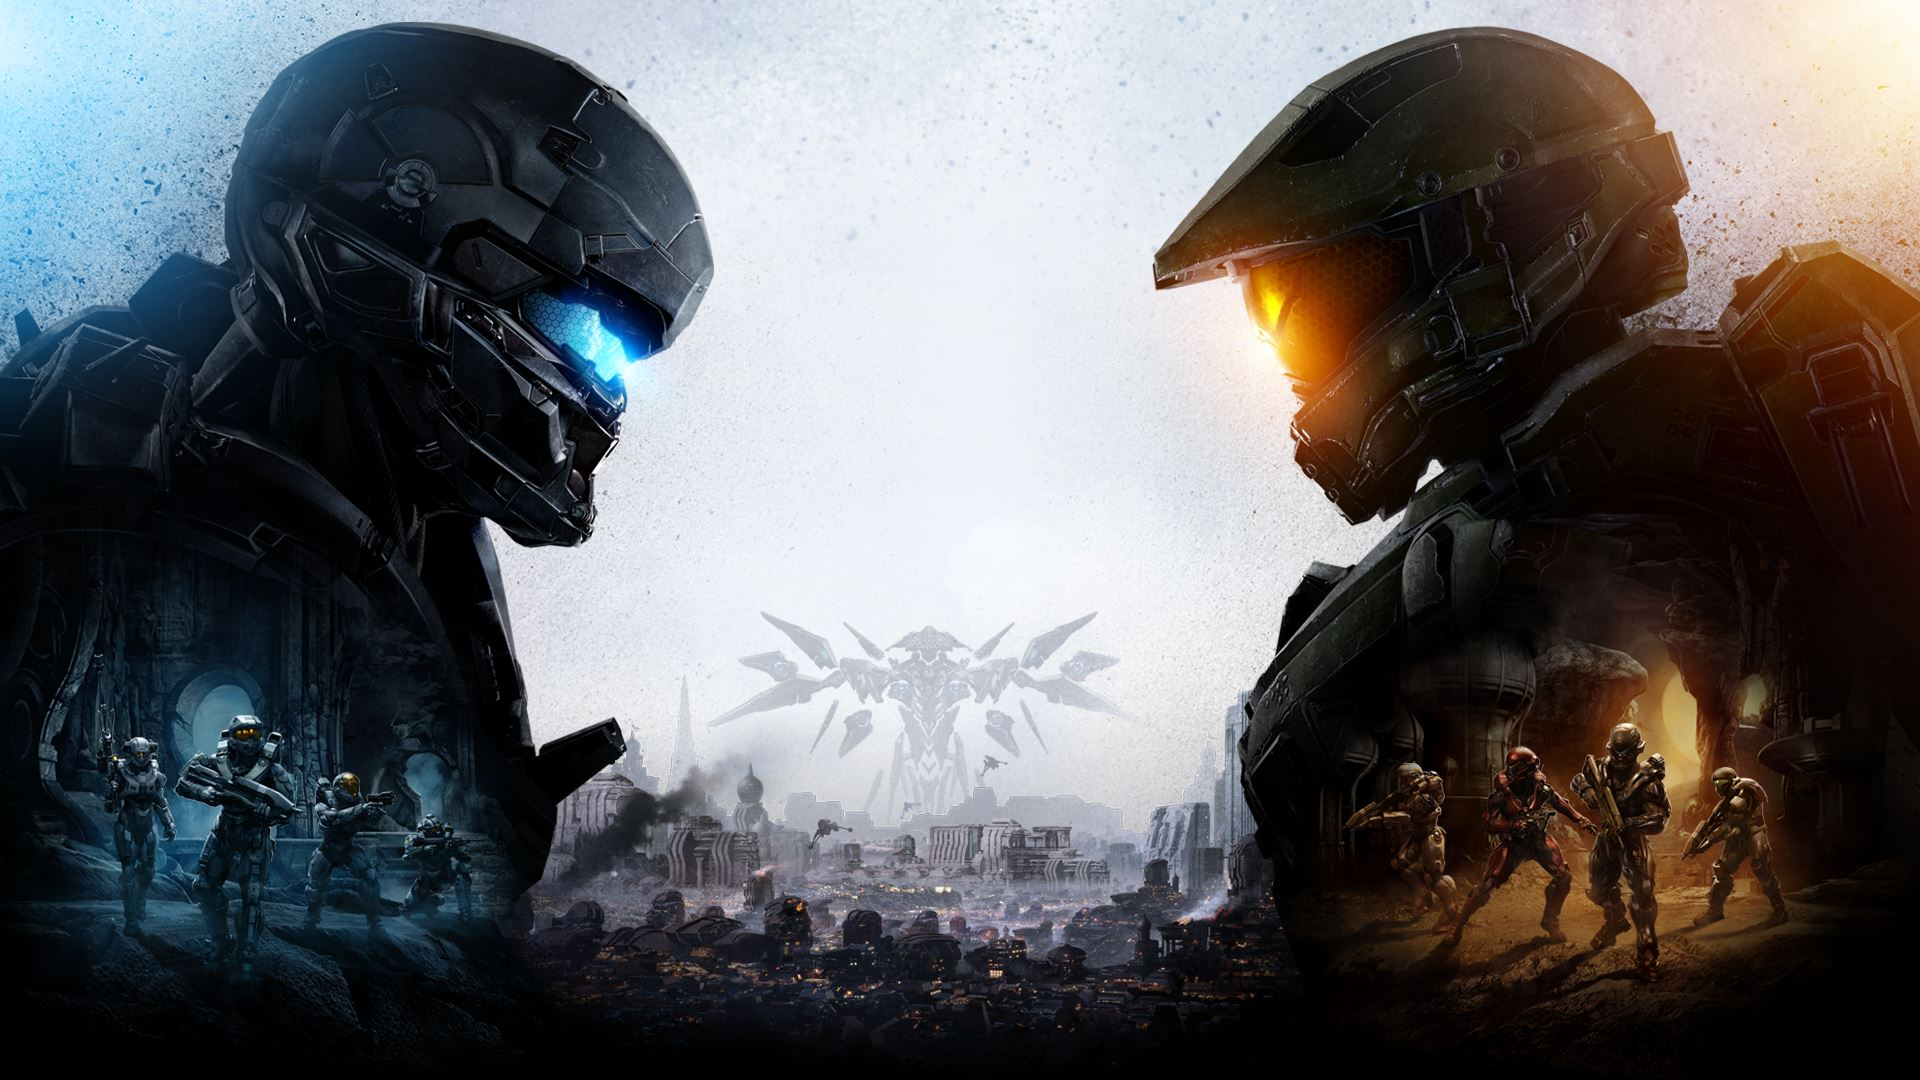 PSA: Halo 5 is free to play for Xbox Live Gold members